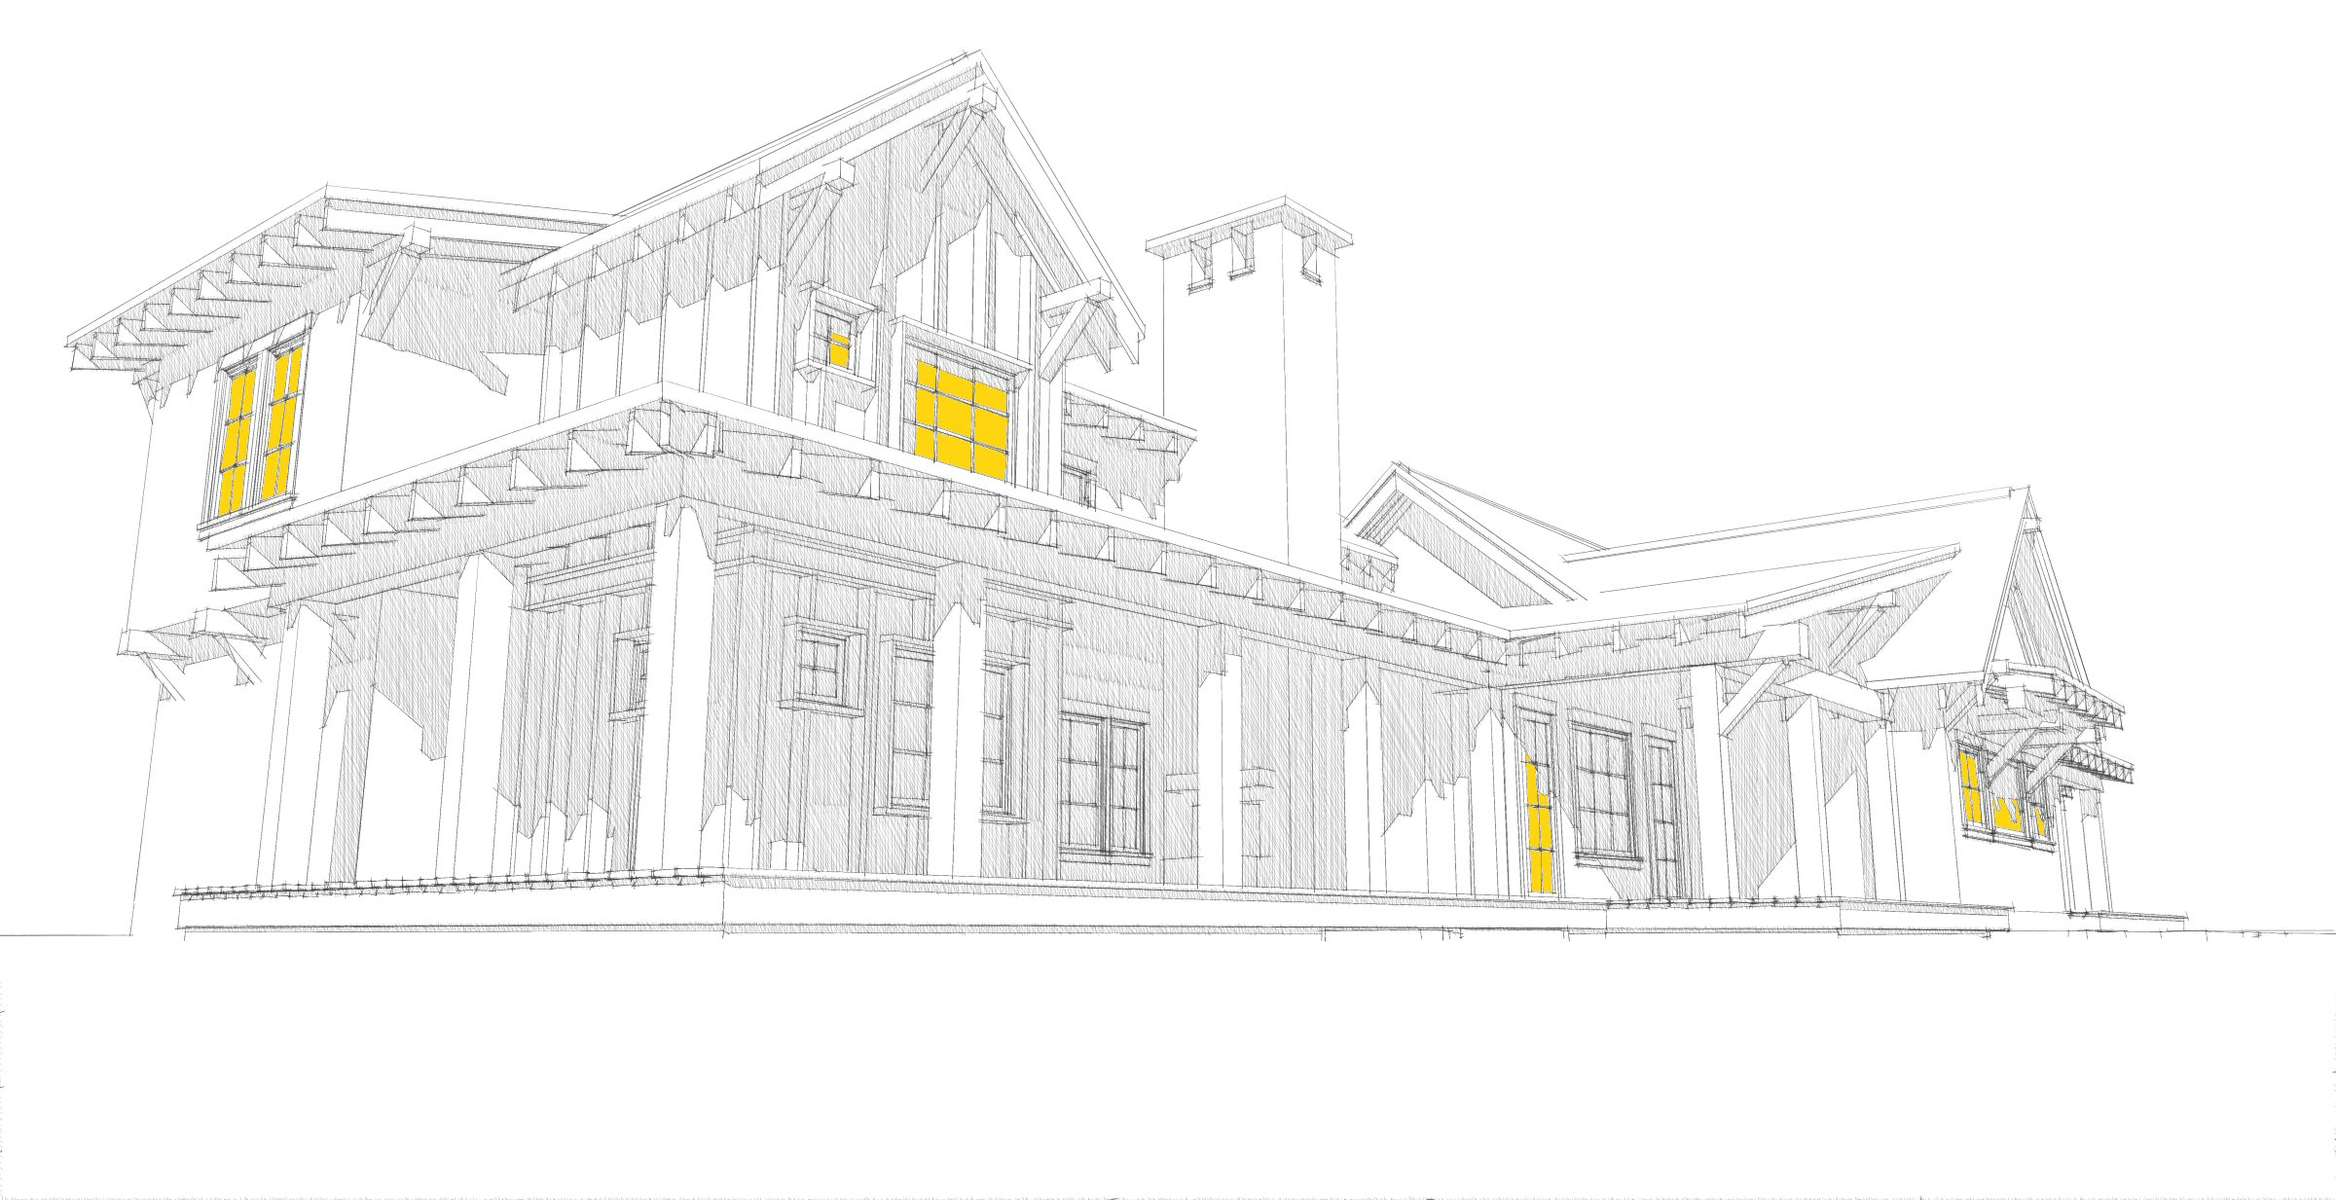 plan-west-design-firm-_-projects-in-process-641